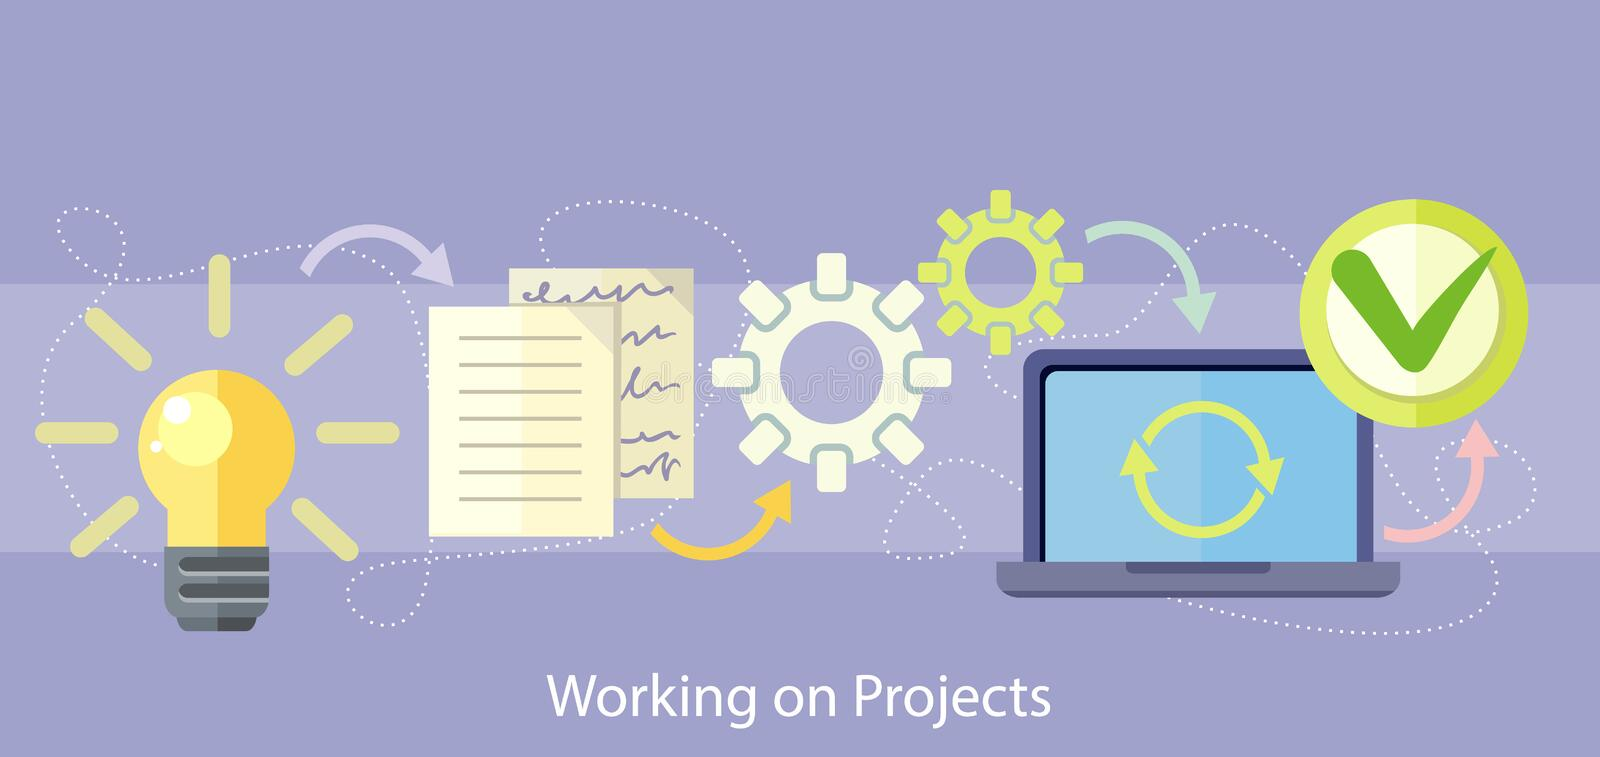 Working on Project Management and Strategy vector illustration